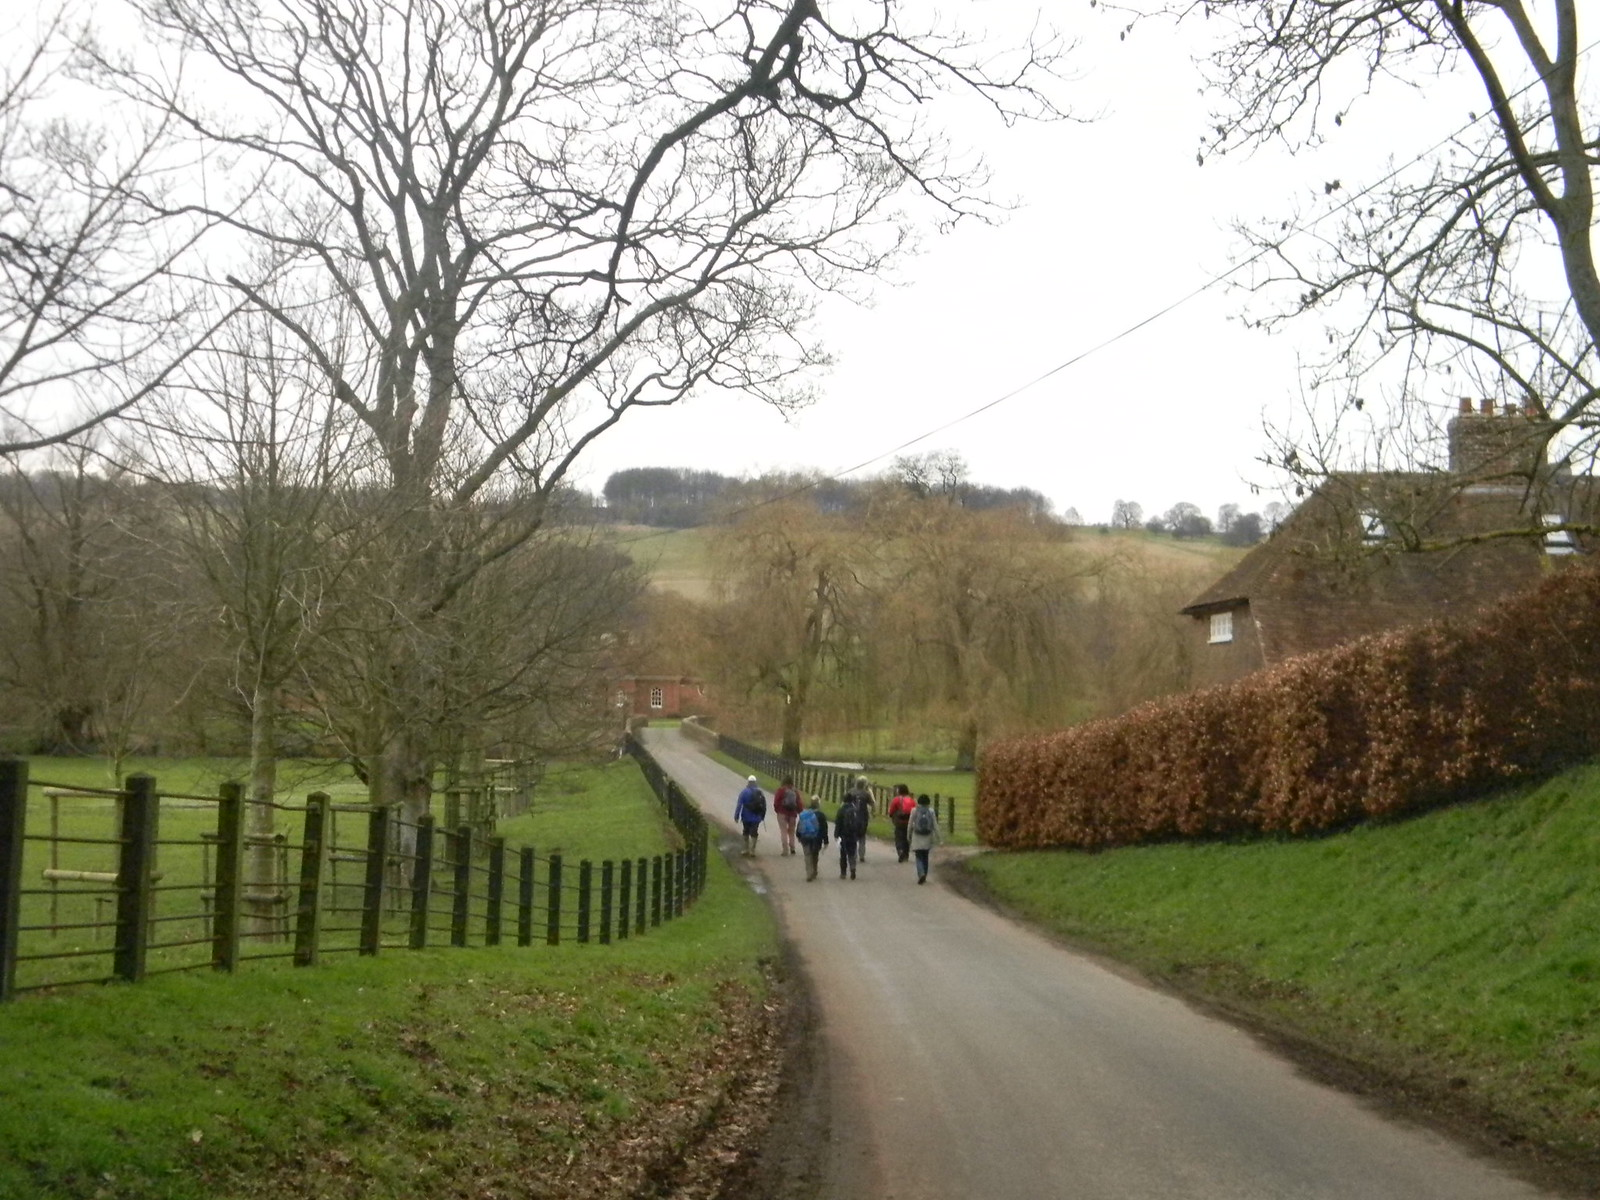 Swooping down to Godmersham Chilham Circular